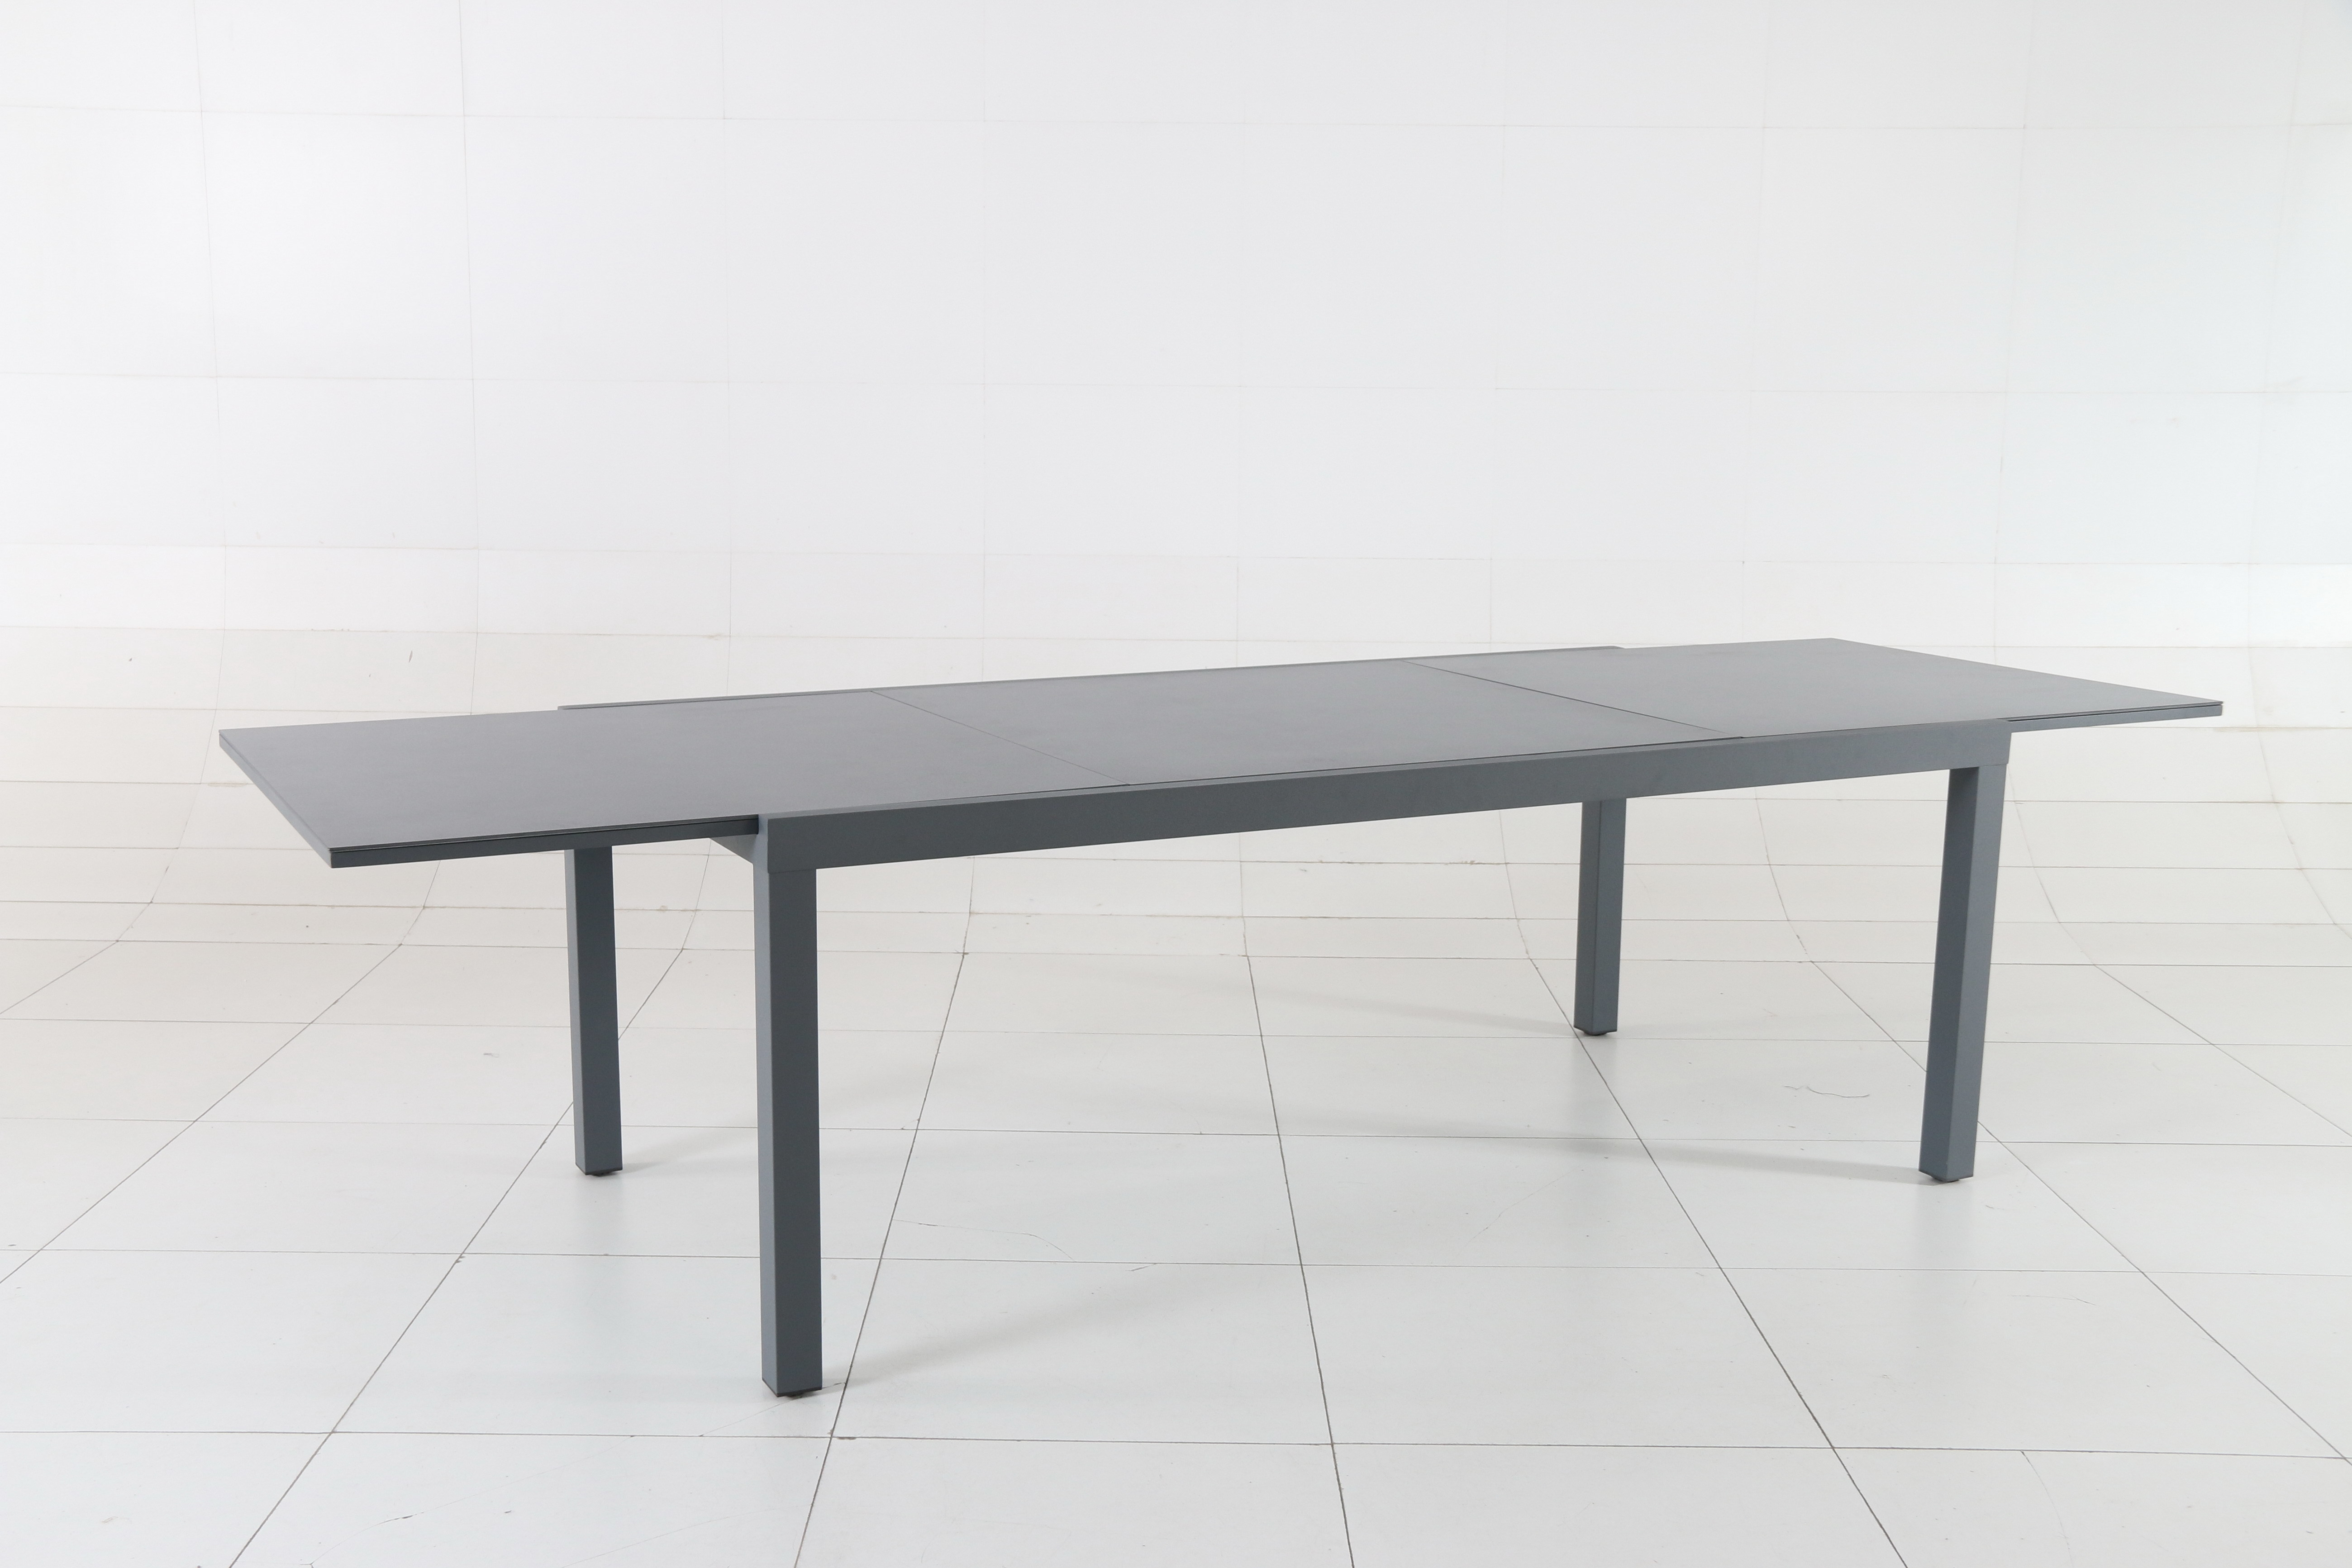 Table Canberra extensible 199/298 cm